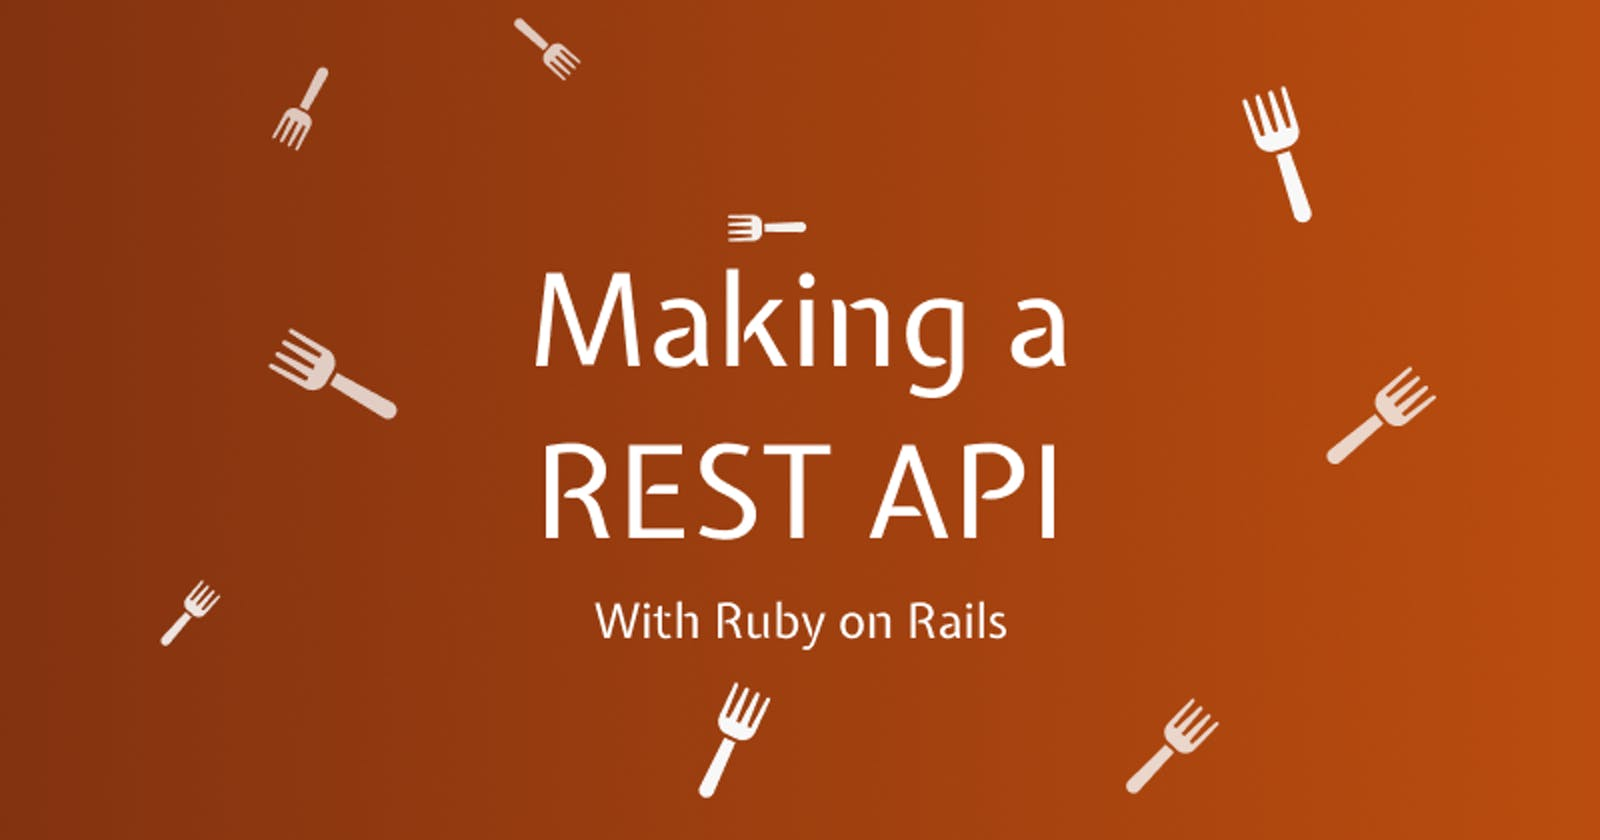 Making a REST API with Ruby